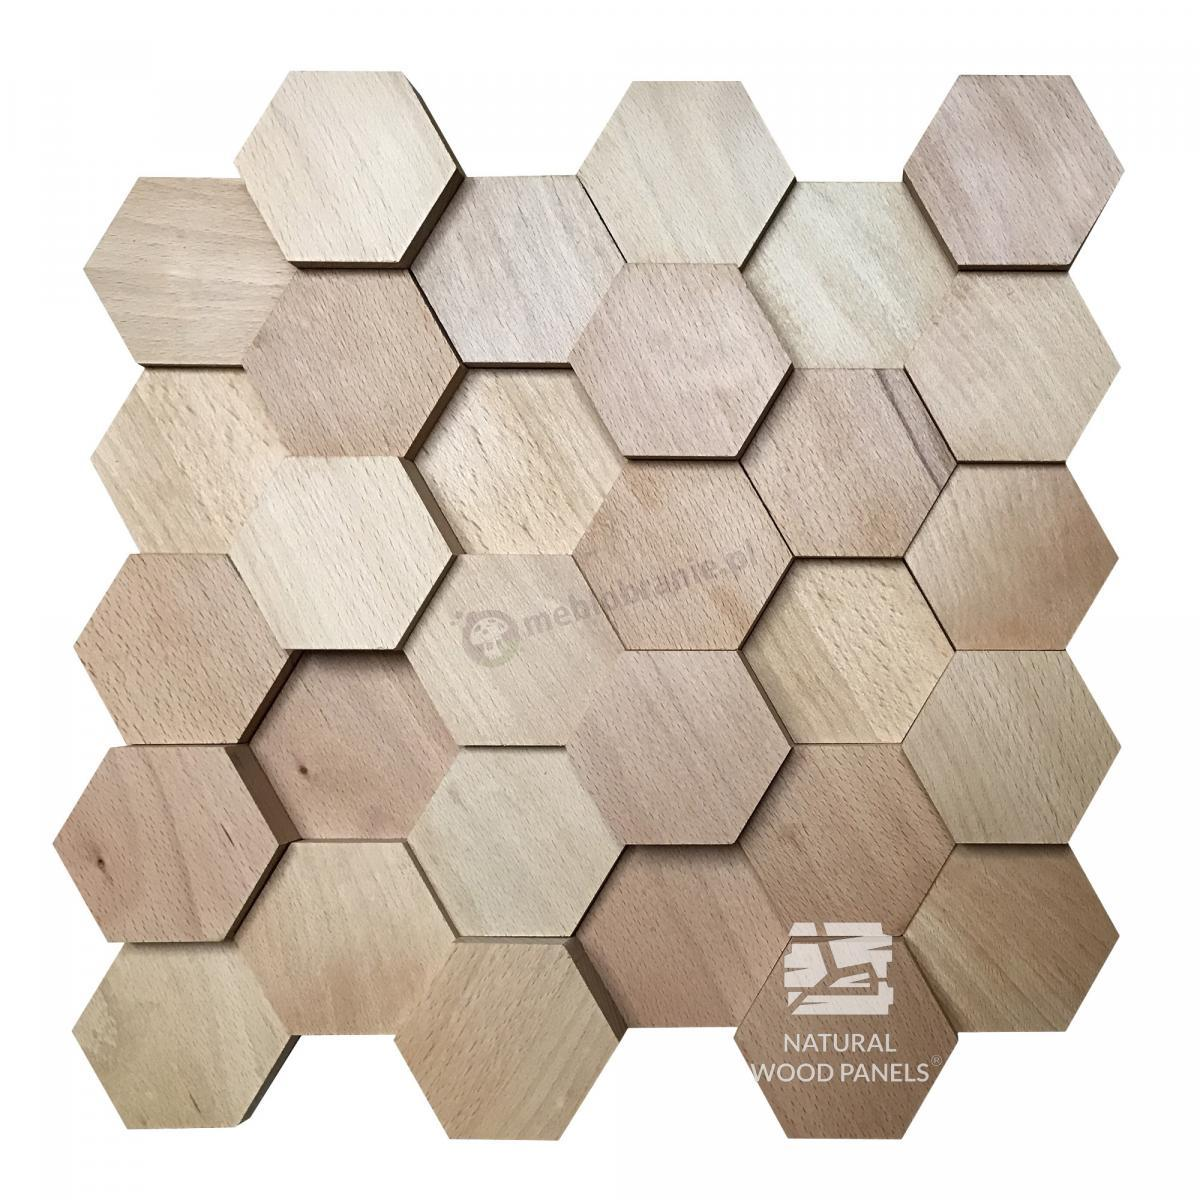 Hexagon 3D Buk Natural Wood Panels